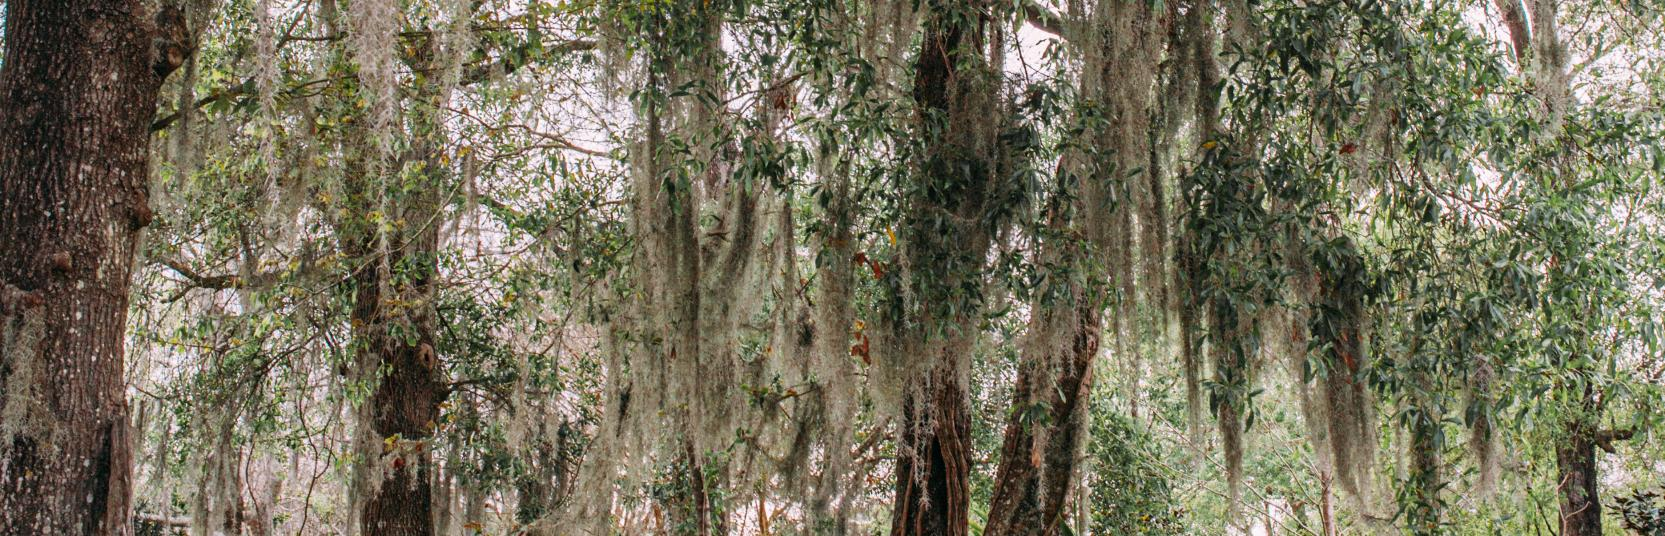 Woman looking up at the trees in Big Thicket